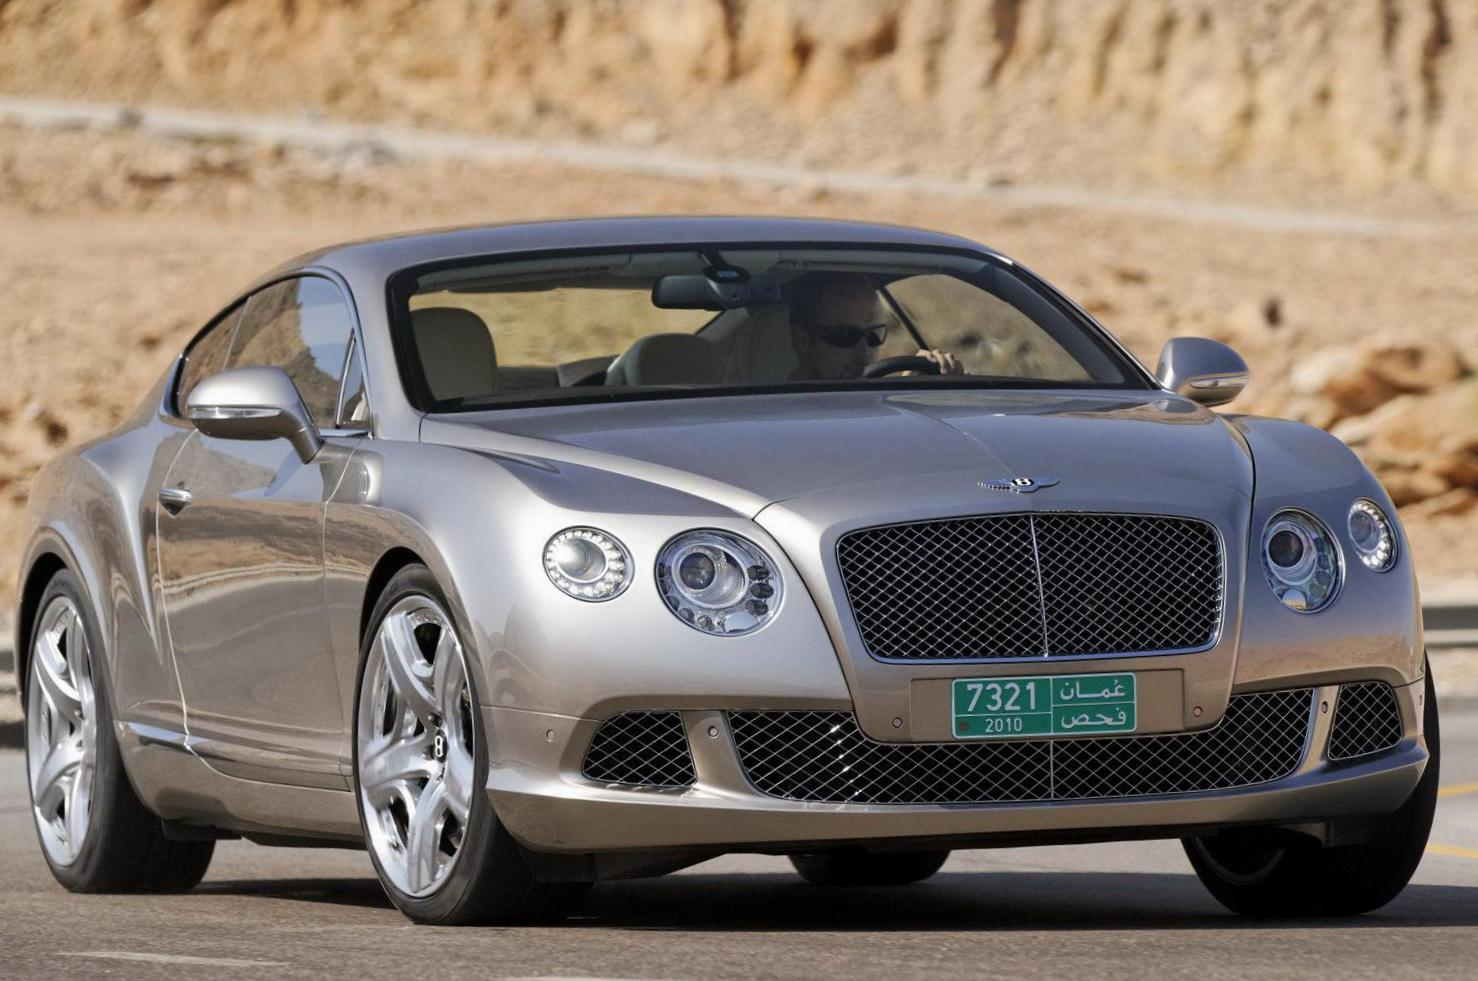 Continental GT Bentley models suv